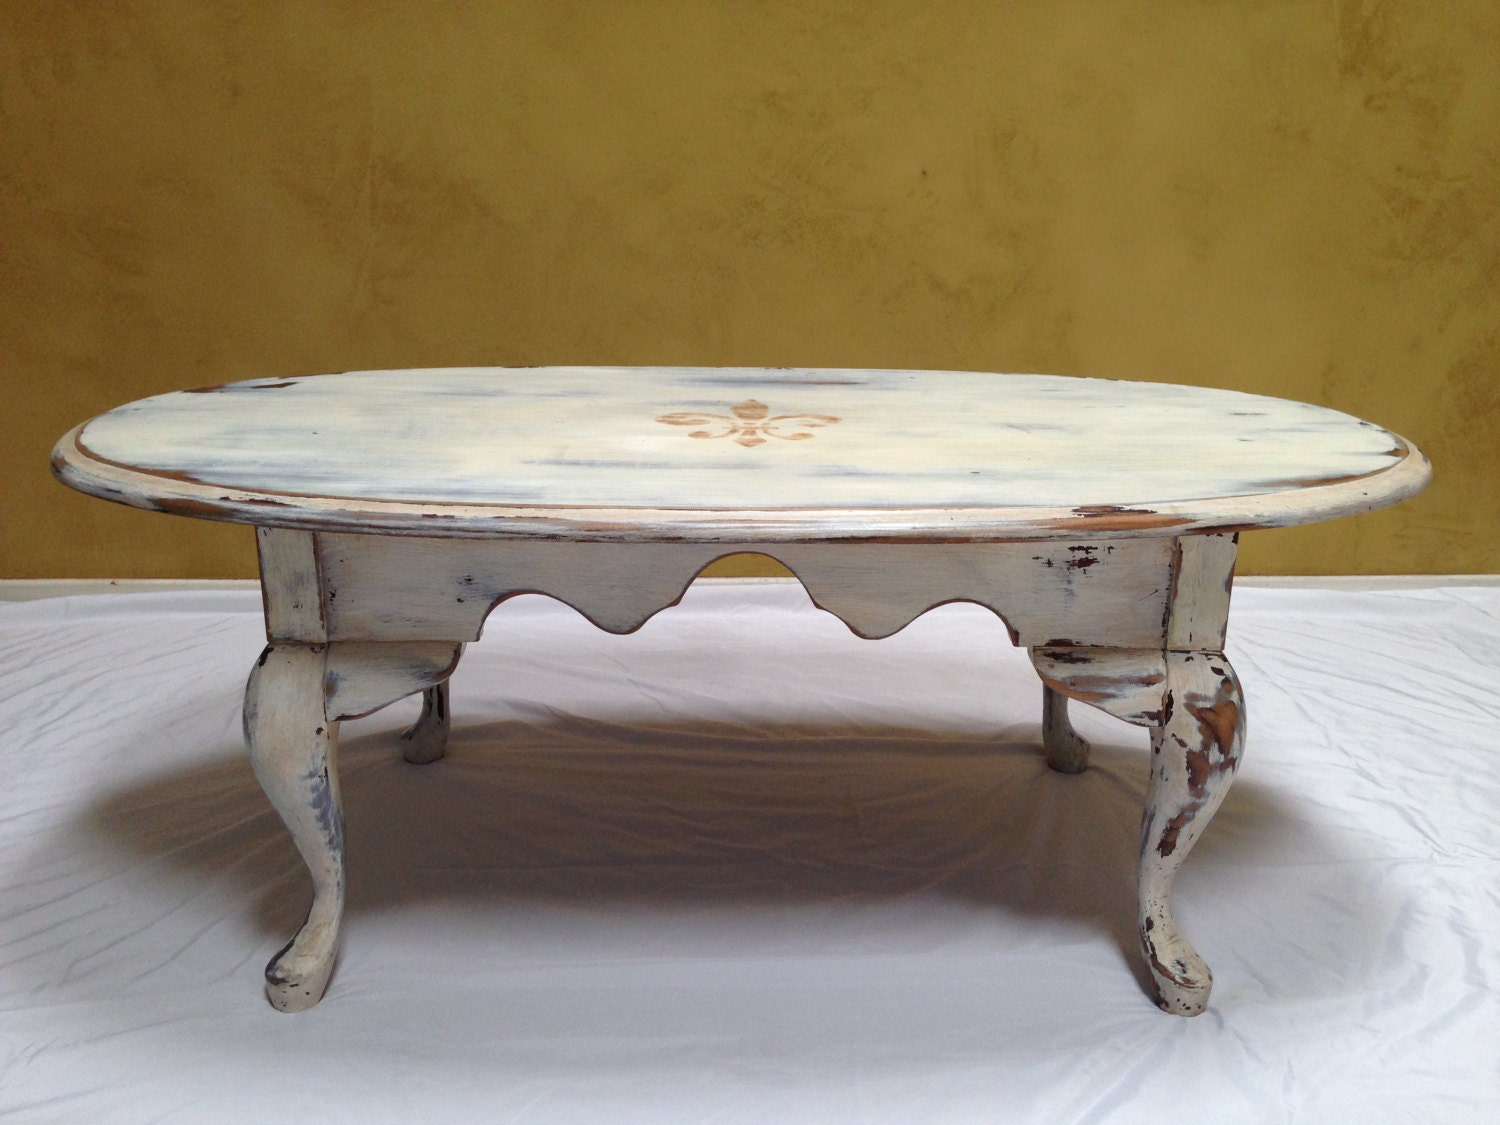 Vintage Queen Anne Coffee Table Refinished Rustic Vintage